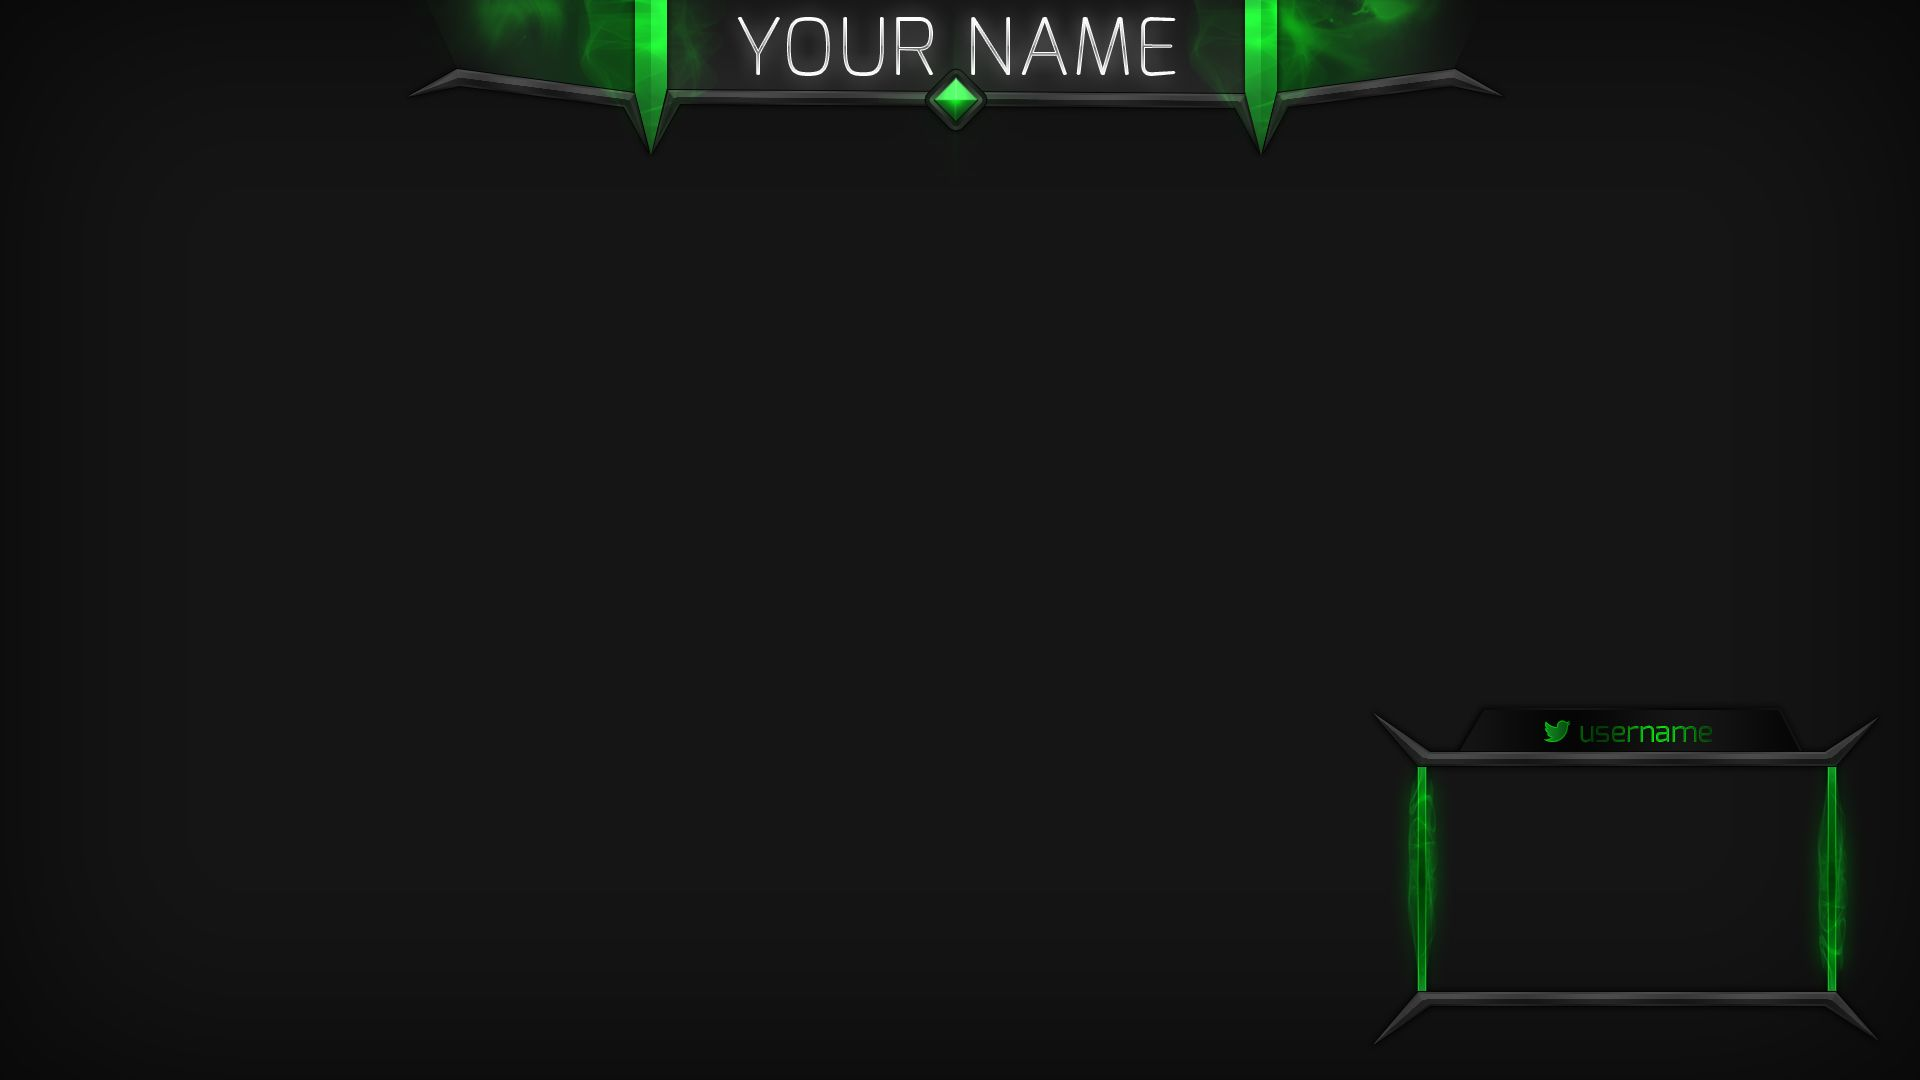 free twitch overlay template - poison cloud green stream overlay twitch stream board